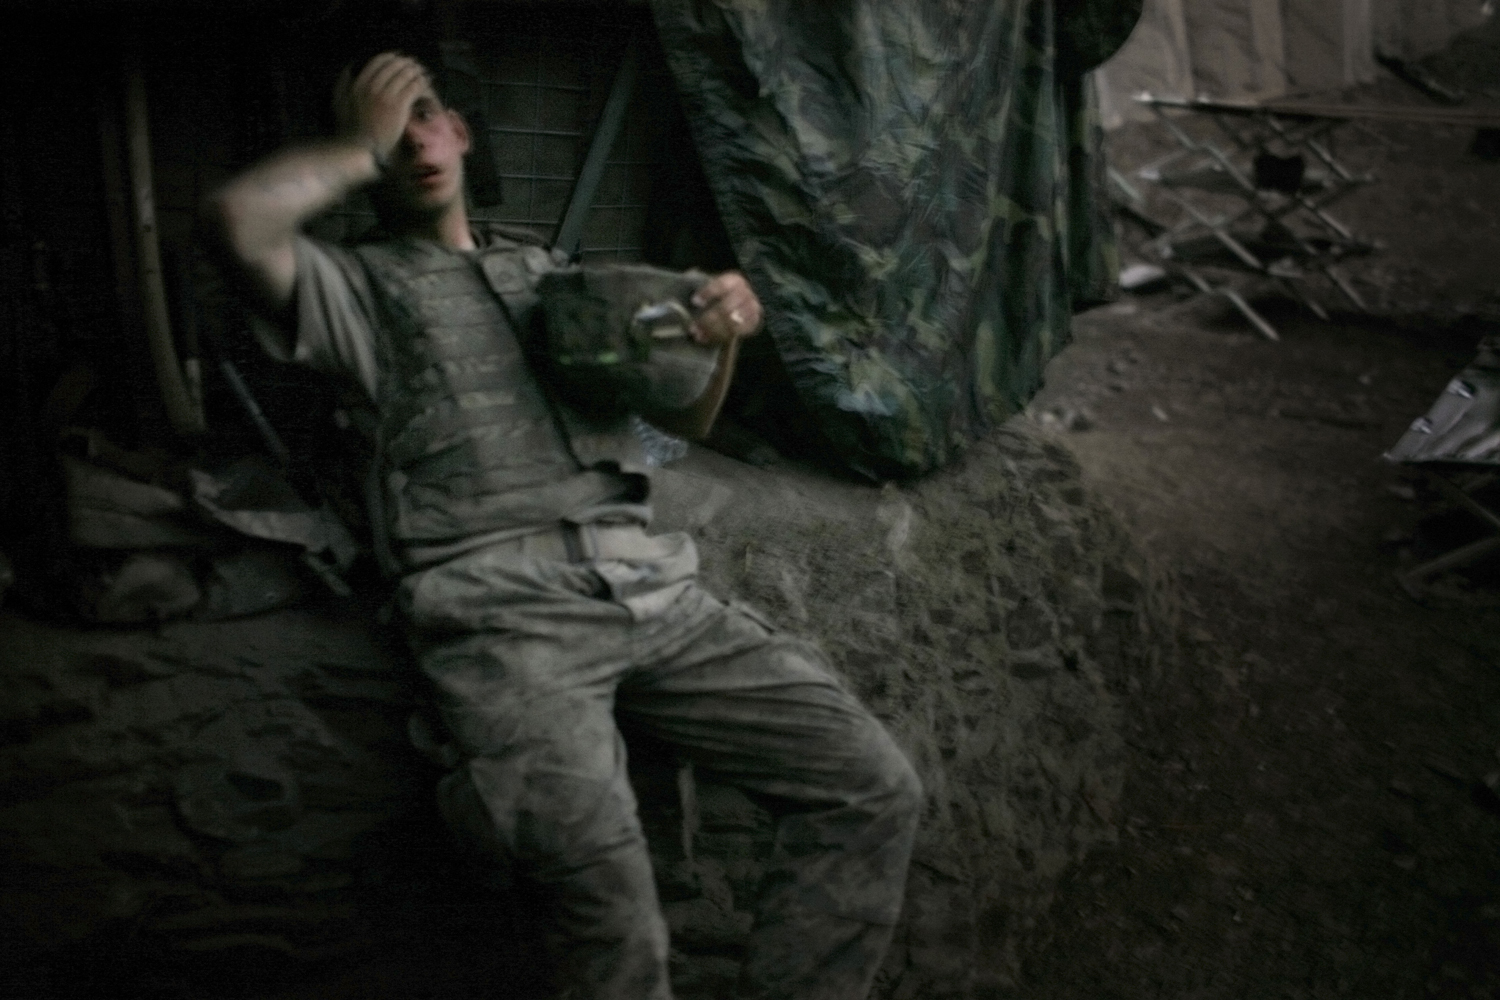 Tim Hetherington's image of a soldier from 2nd platoon as he rests at the end of a day of heavy fighting at the 'Restrepo' outpost in Korengal Valley, Afghanistan, 2007.